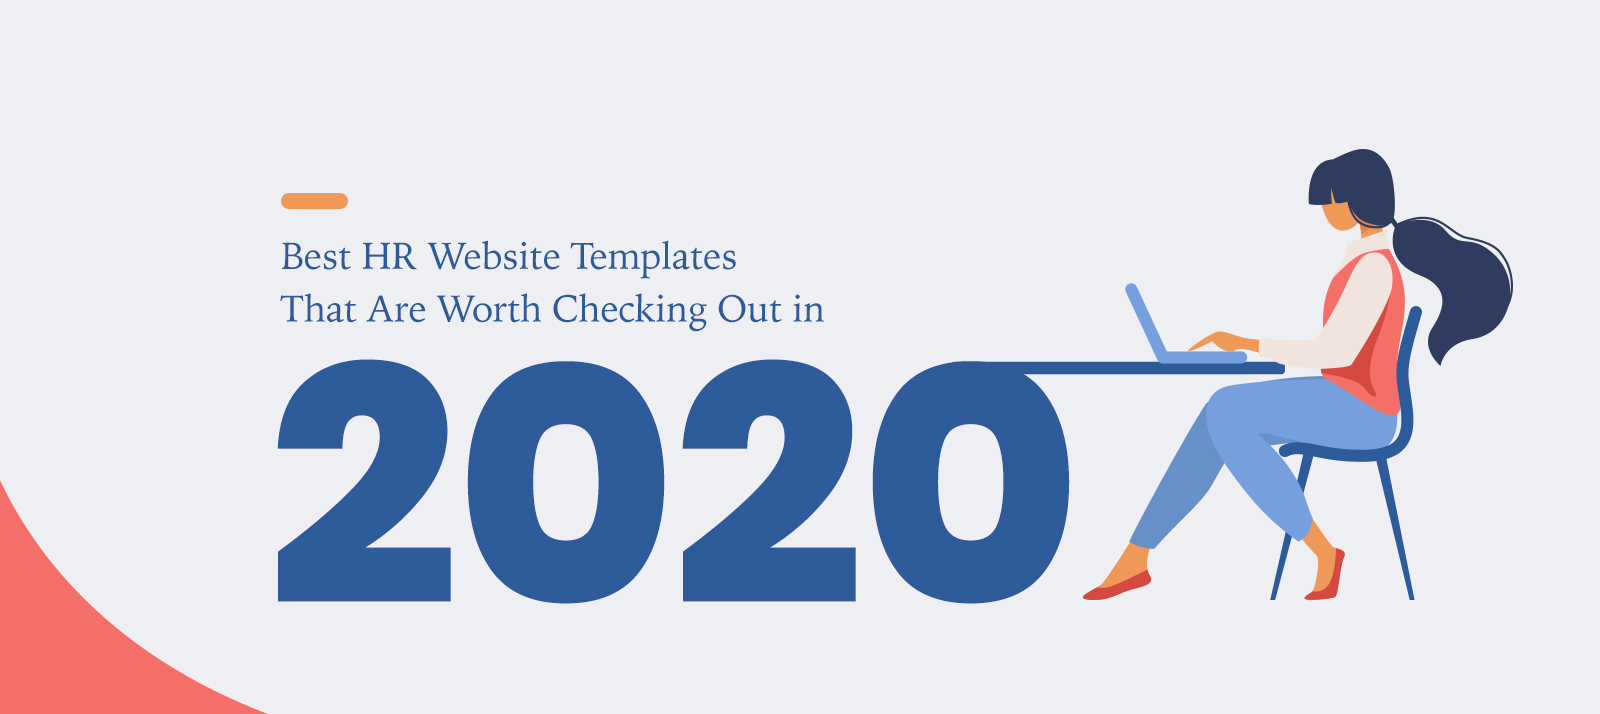 Best HR Website Templates That Are Worth Checking Out in 2020